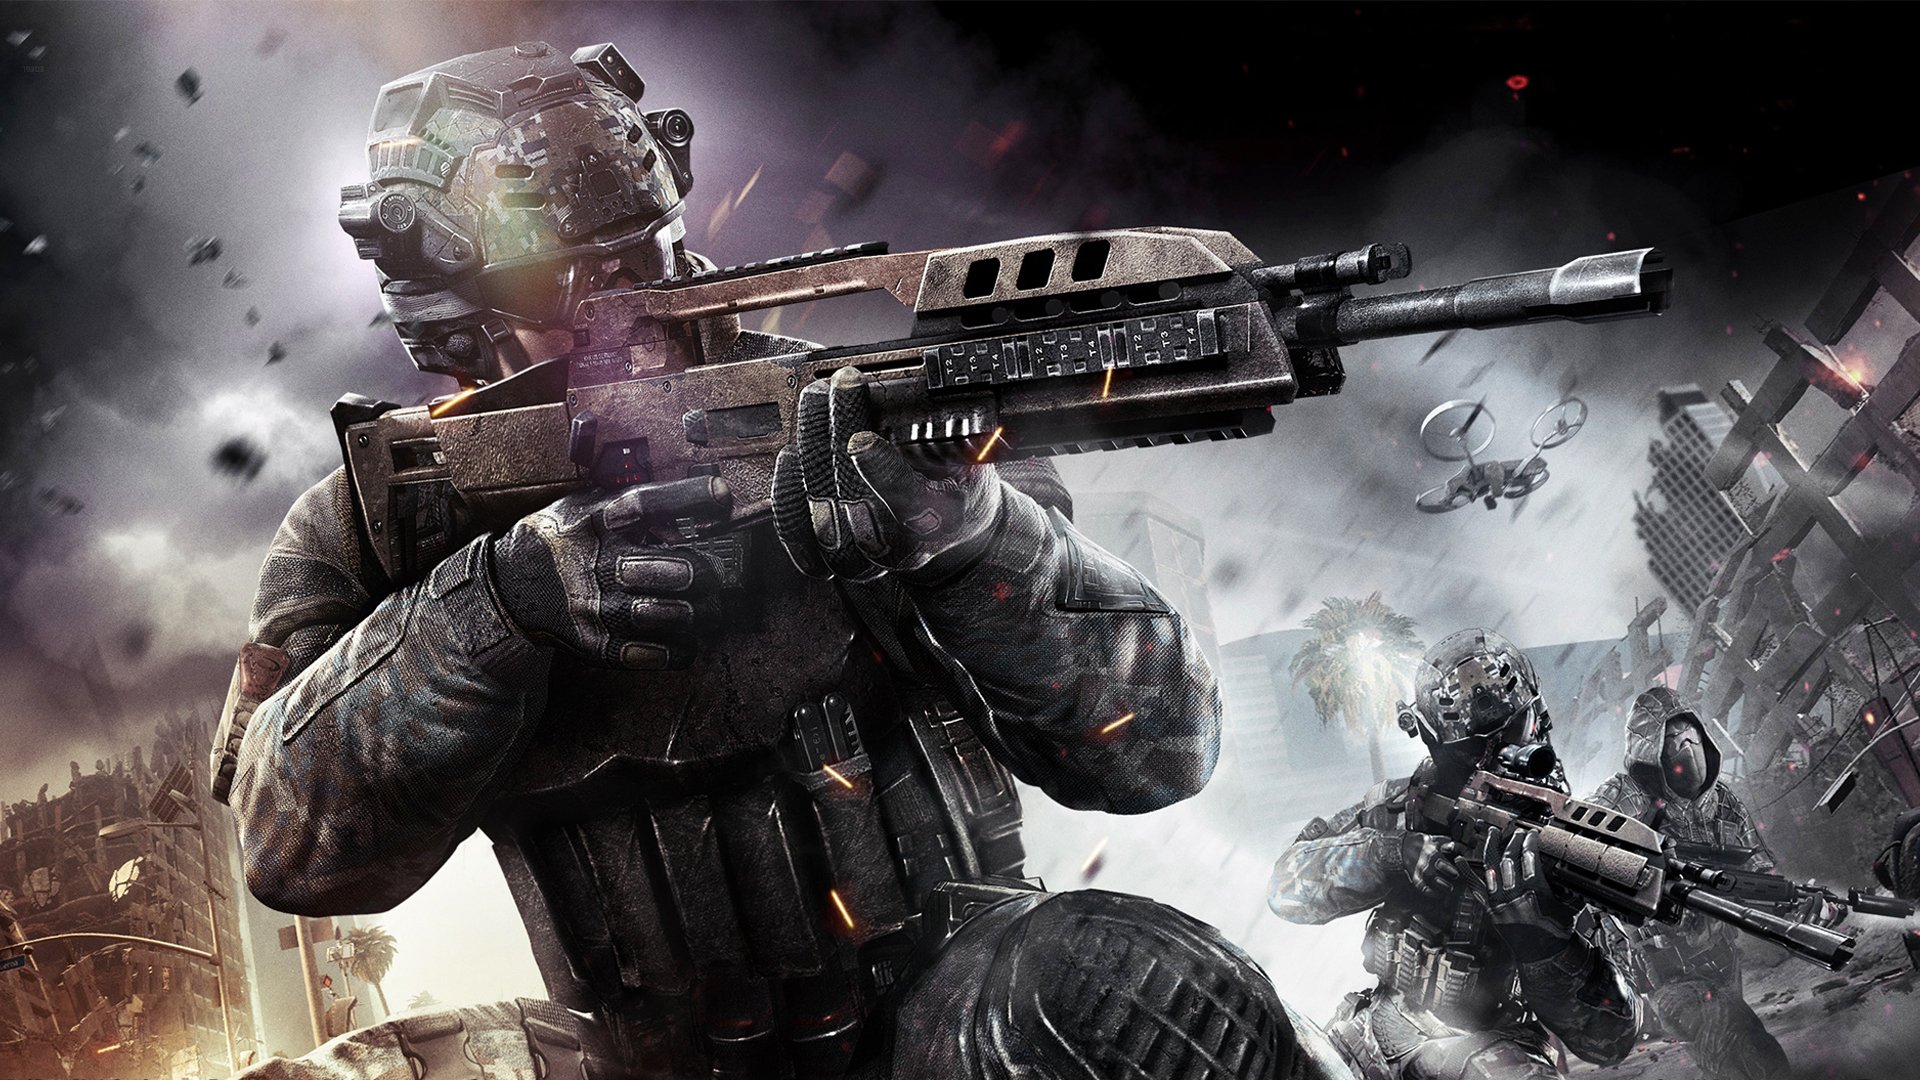 call of duty hd wallpaper | hintergrund | 1920x1080 | id:328192